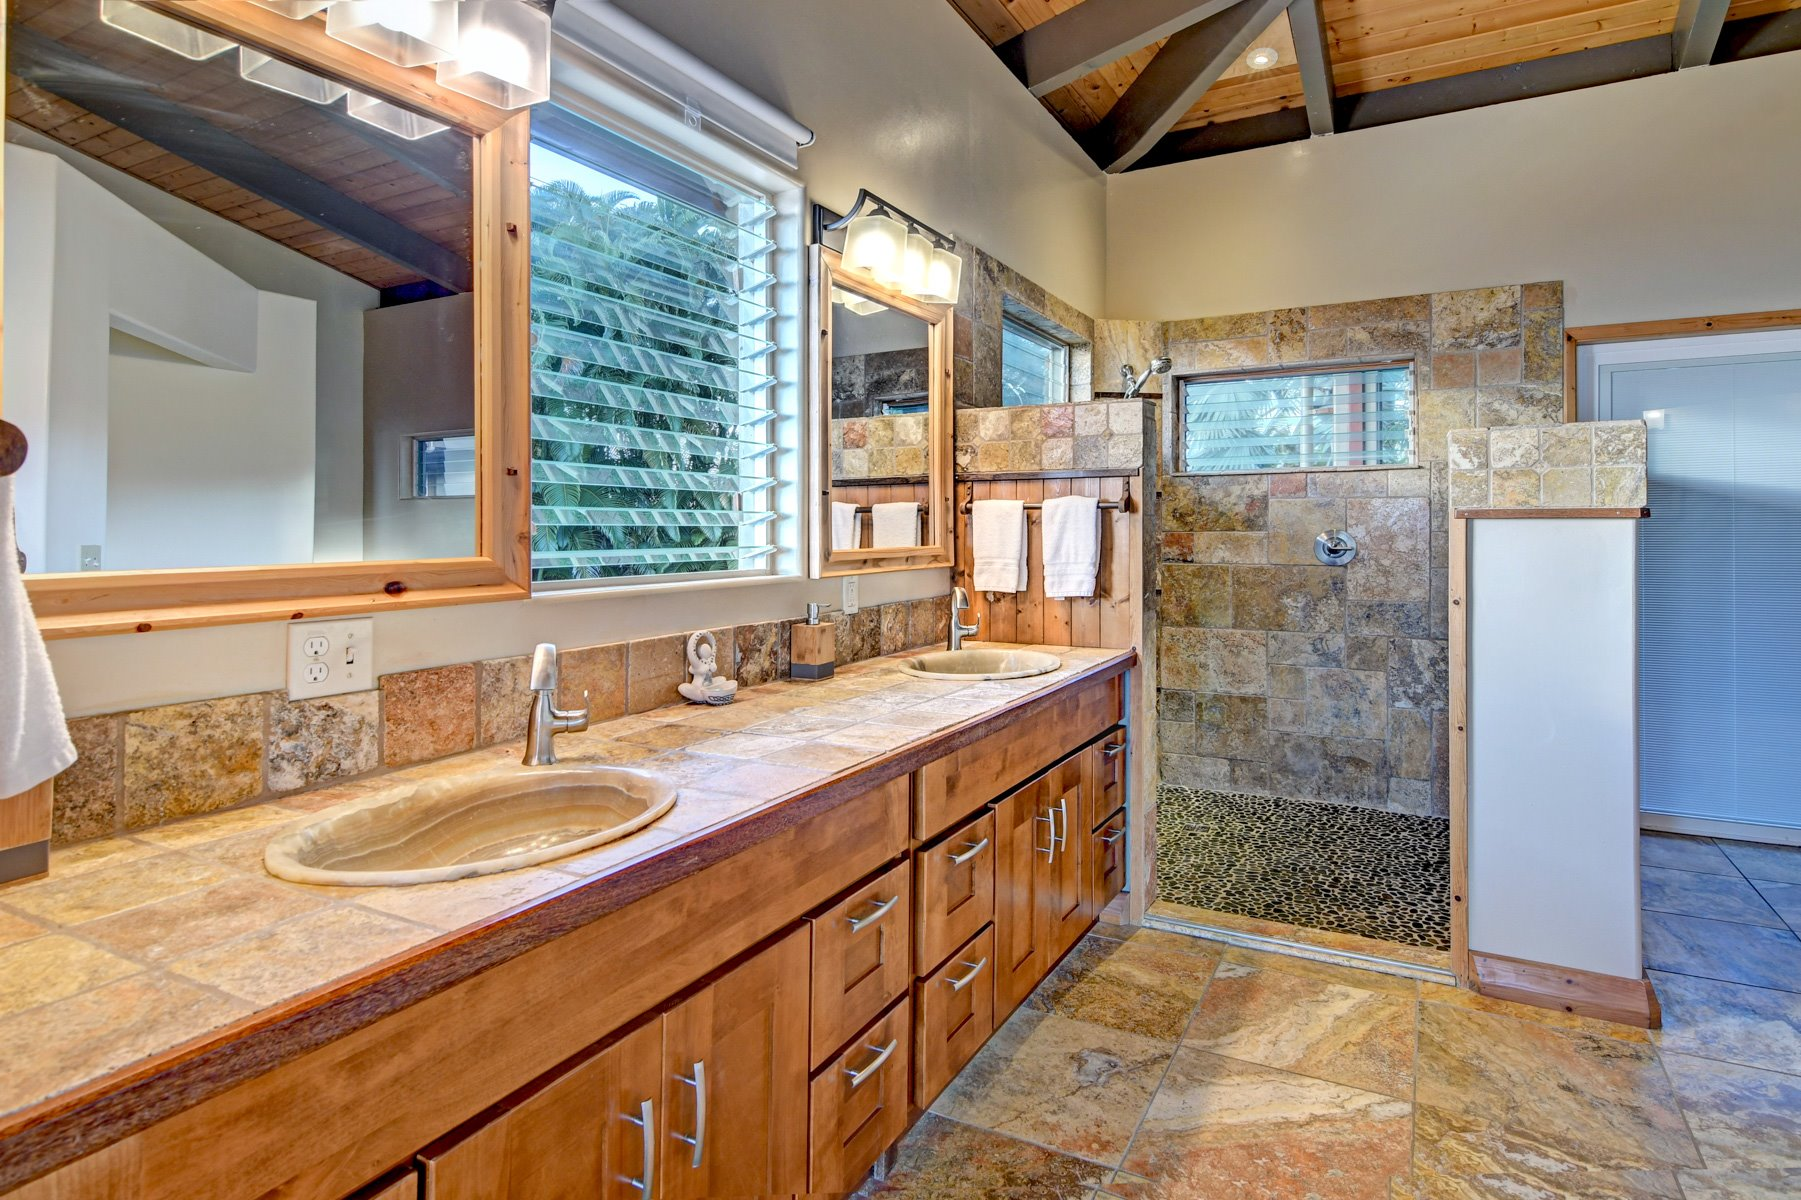 Master bath that features custom tile work, walk in showers, his/her sinks.